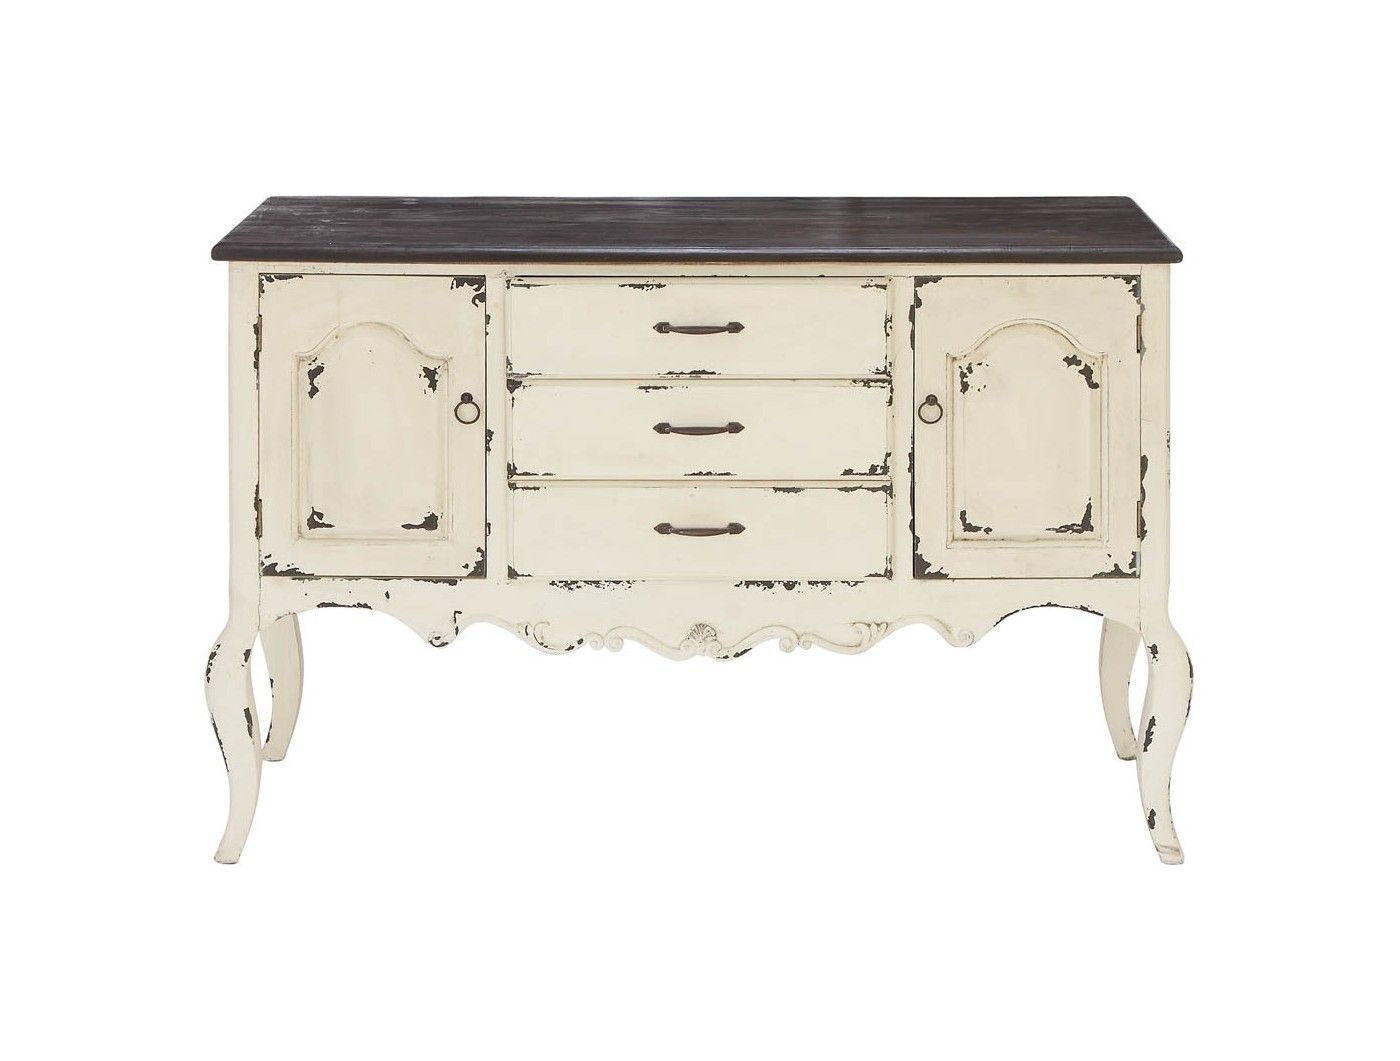 Wood 2 Doors 3 Drawers Buffet White/brown - Olivia & May within Industrial Style 3-Drawer Buffets (Image 29 of 30)